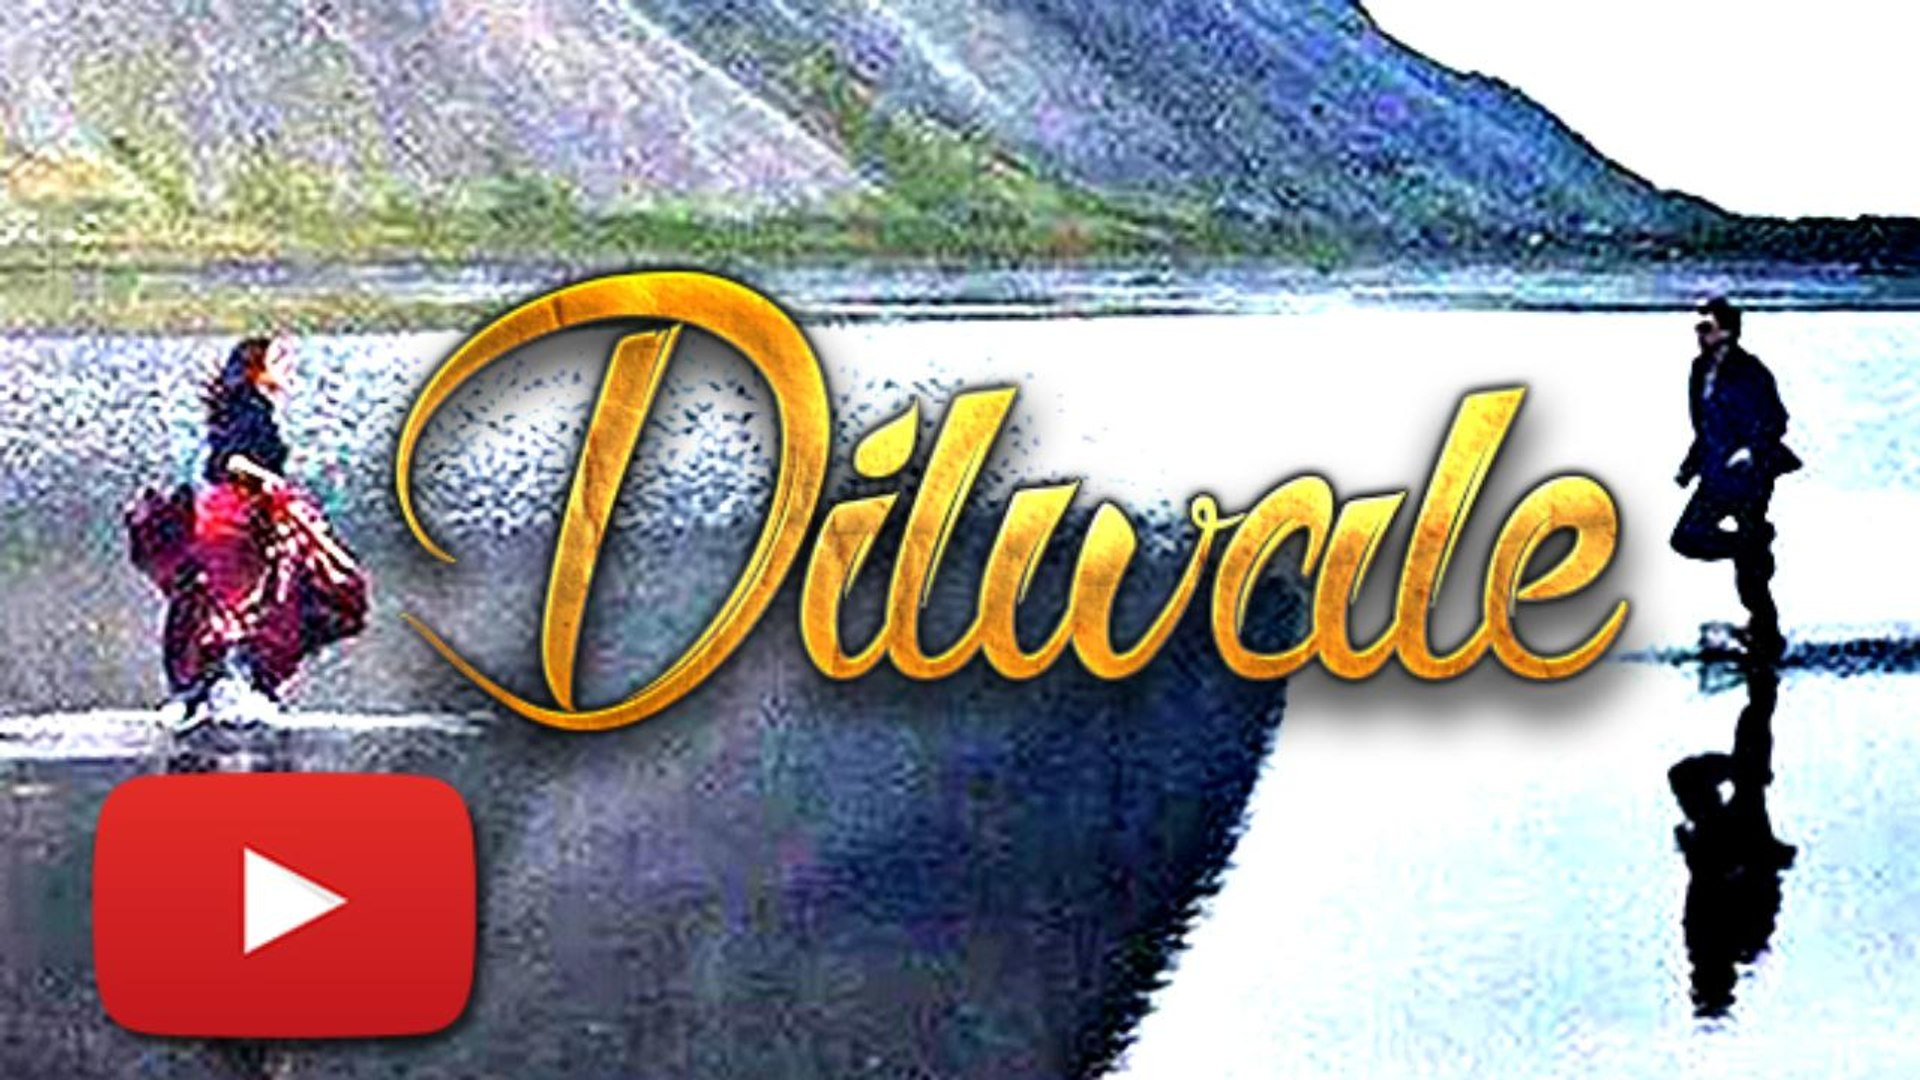 dilwale 2015 Movie Song - dilwale 2015 Free Download - dilwale Songs 2015